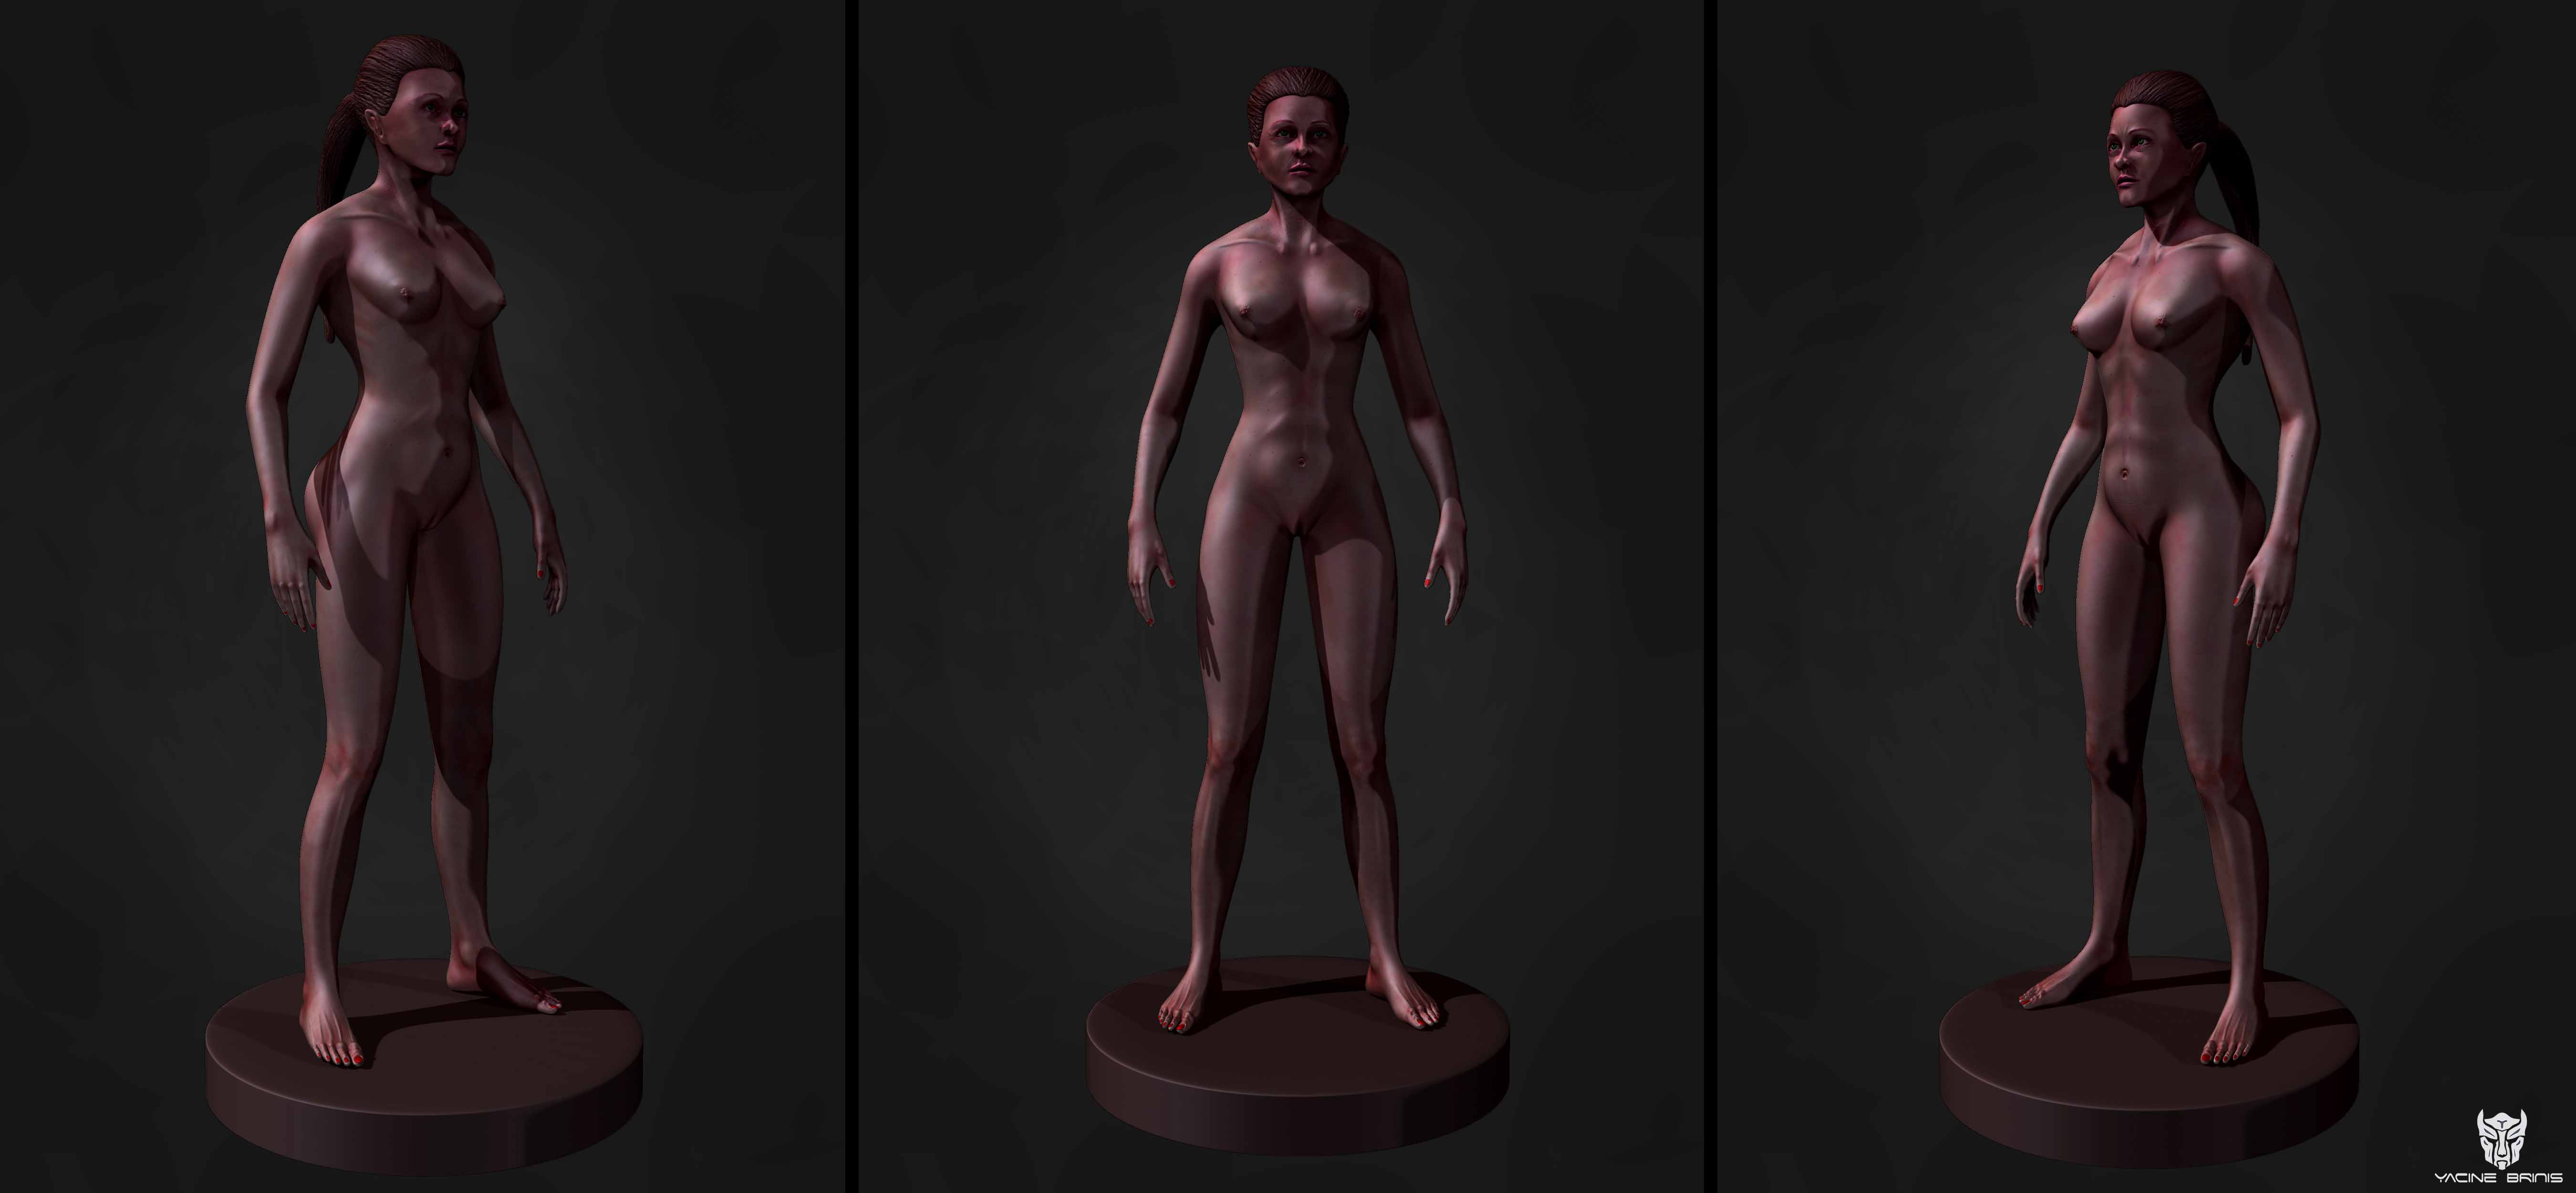 YacineBRINIS images All the renders Final Image 3D Female Anatomy By ...